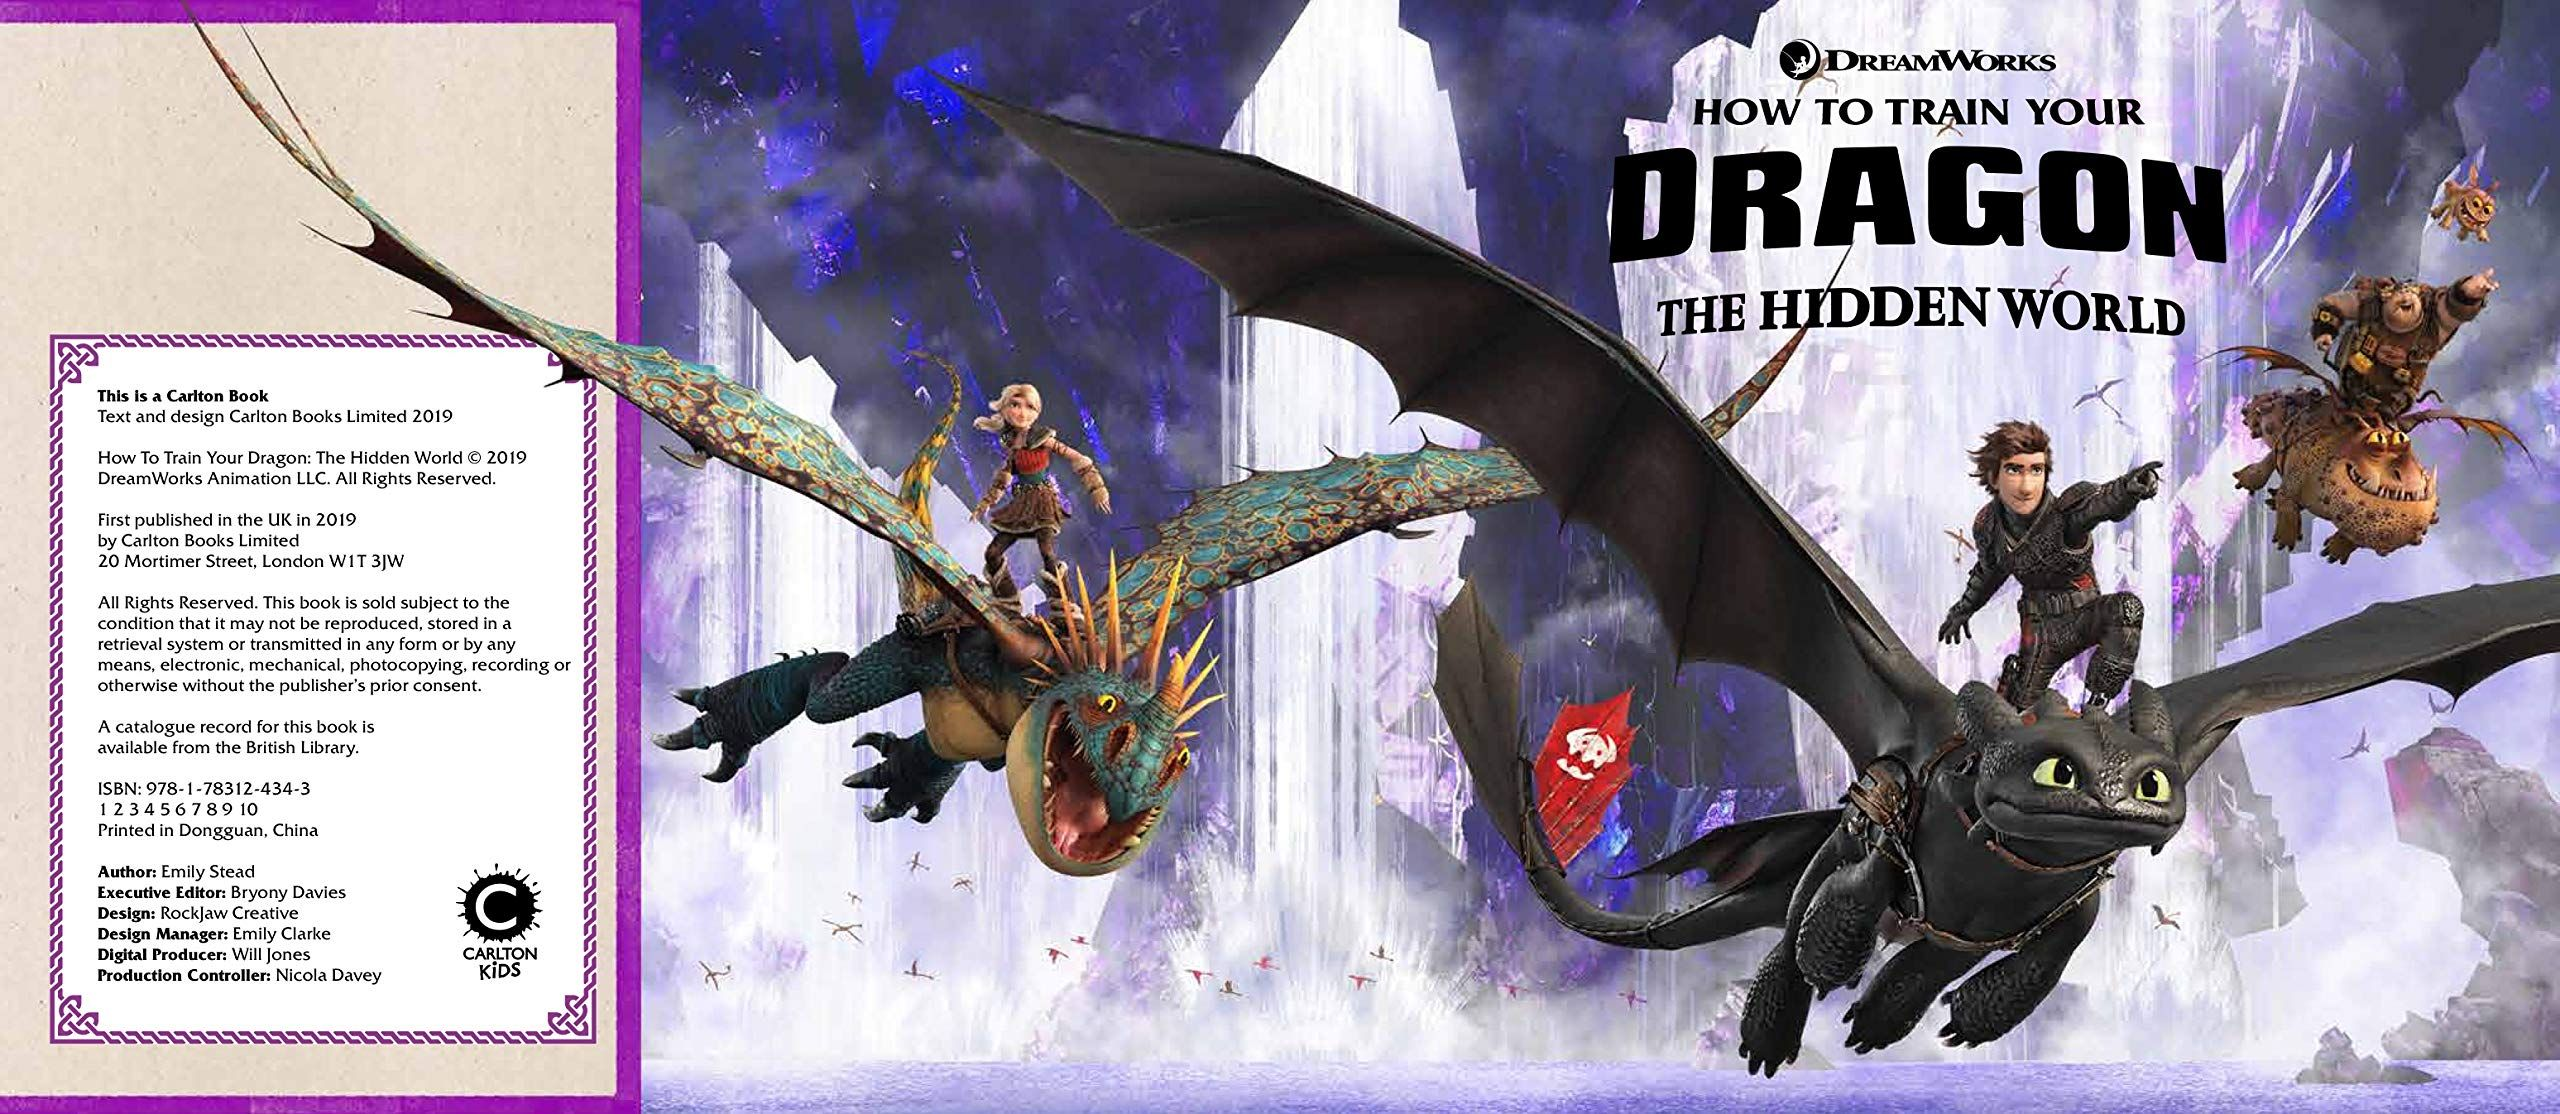 Pin By Netsay Lopez On Httyd With Images How Train Your Dragon